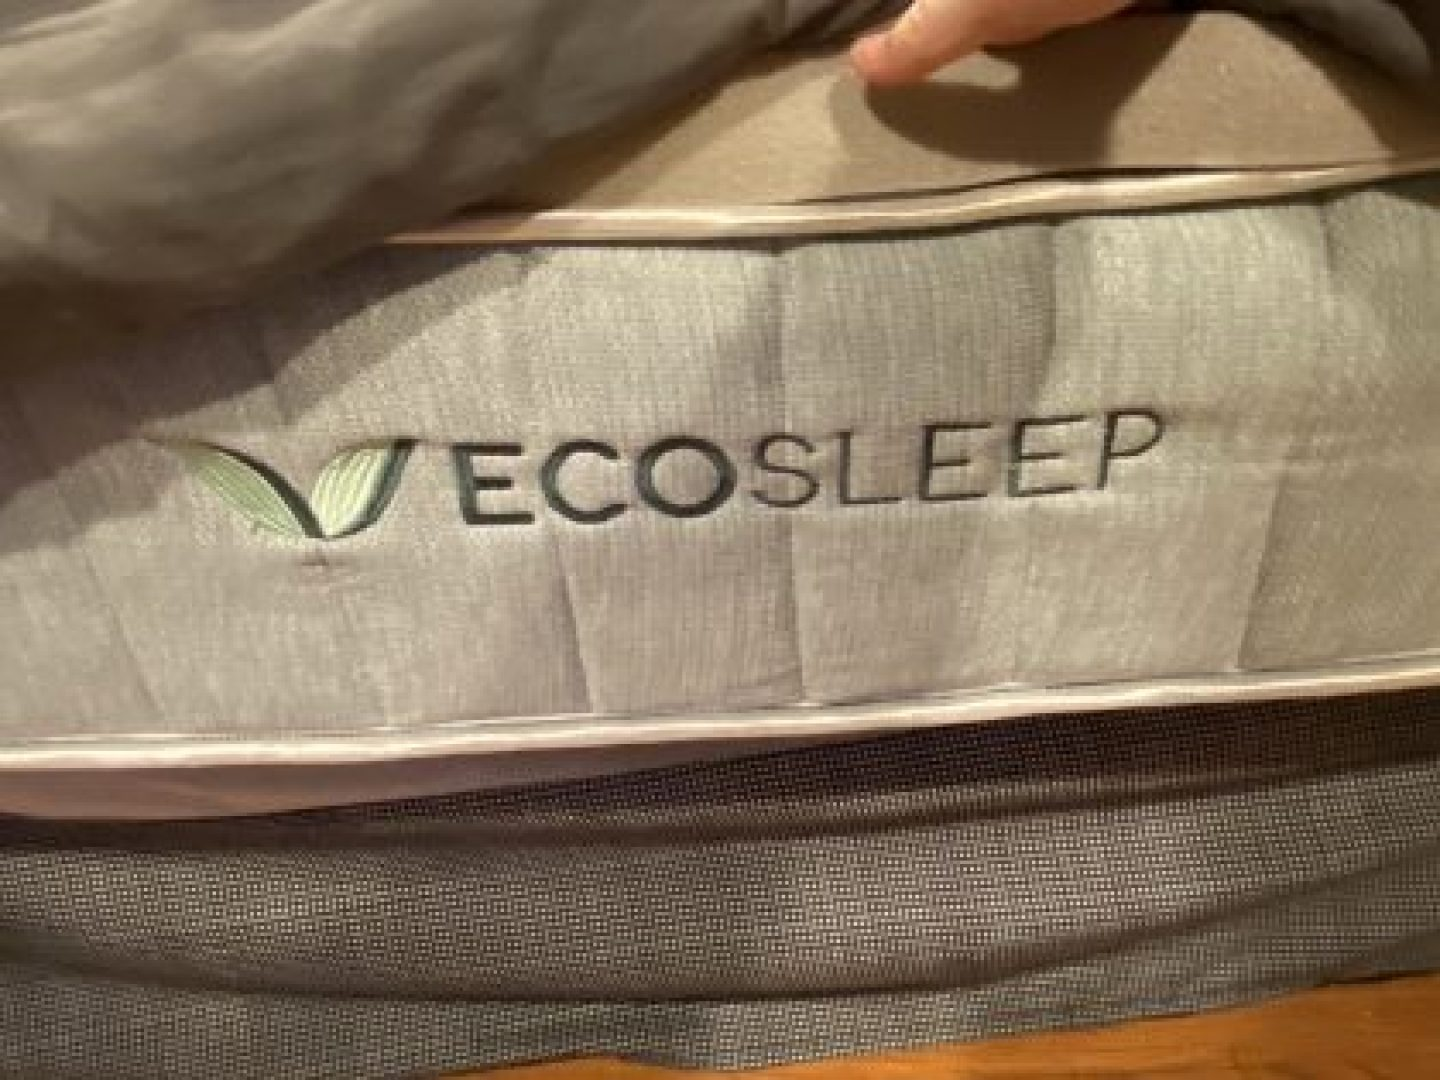 Also can we say Shout out to my sponsors EcoSleep. 100% organic latex and cotton mattress.